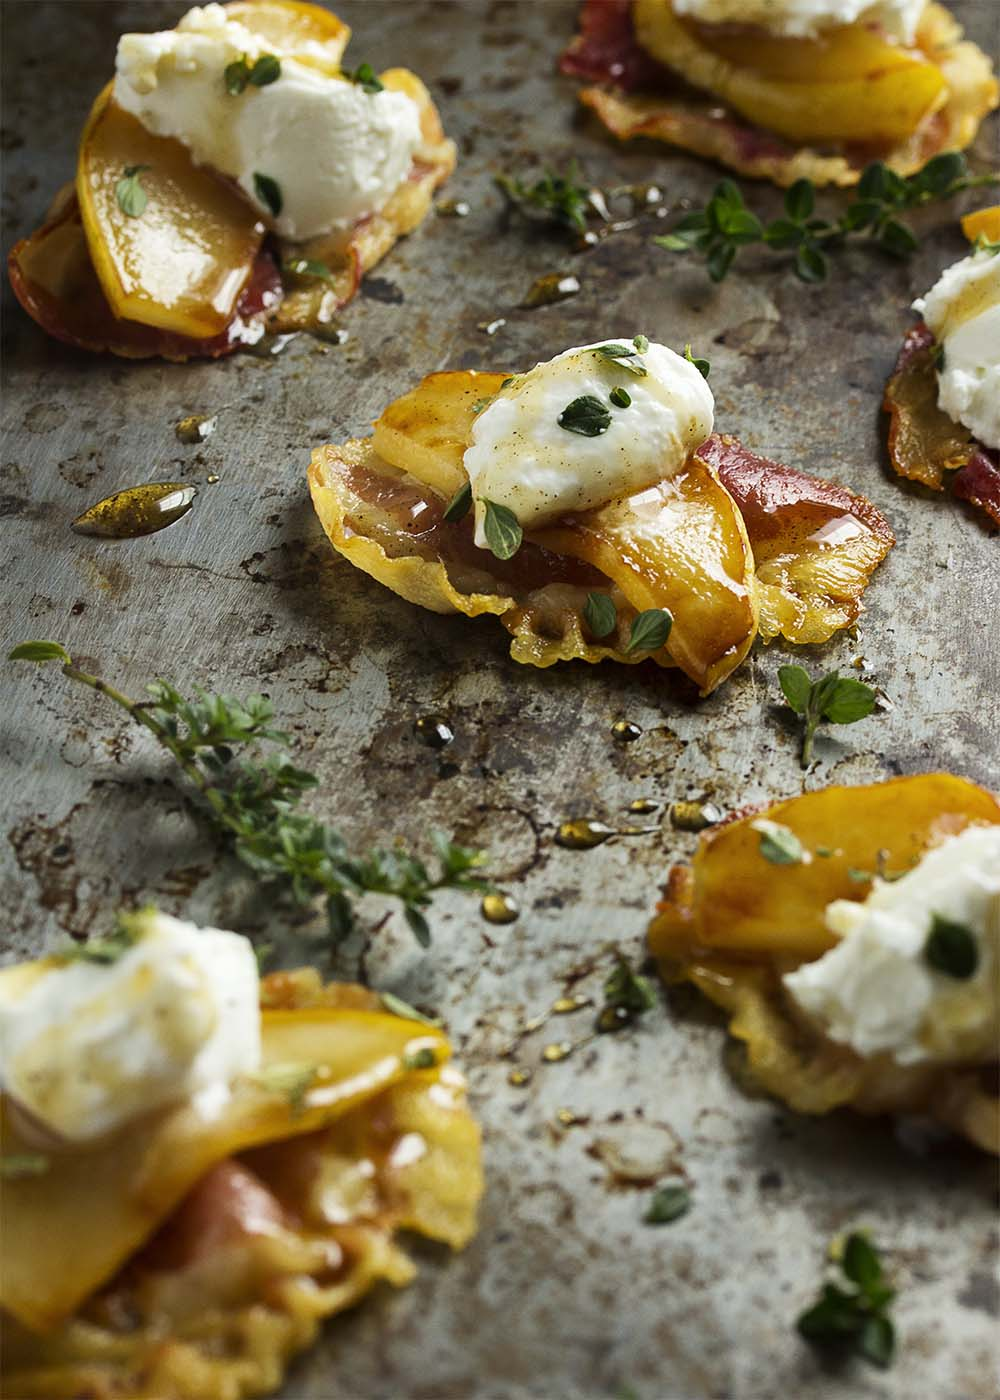 Pear slices and pancetta crisps combine with goat cheese and a drizzle of spiced honey in this unique and simple party appetizer. | justalittlebitofbacon.com